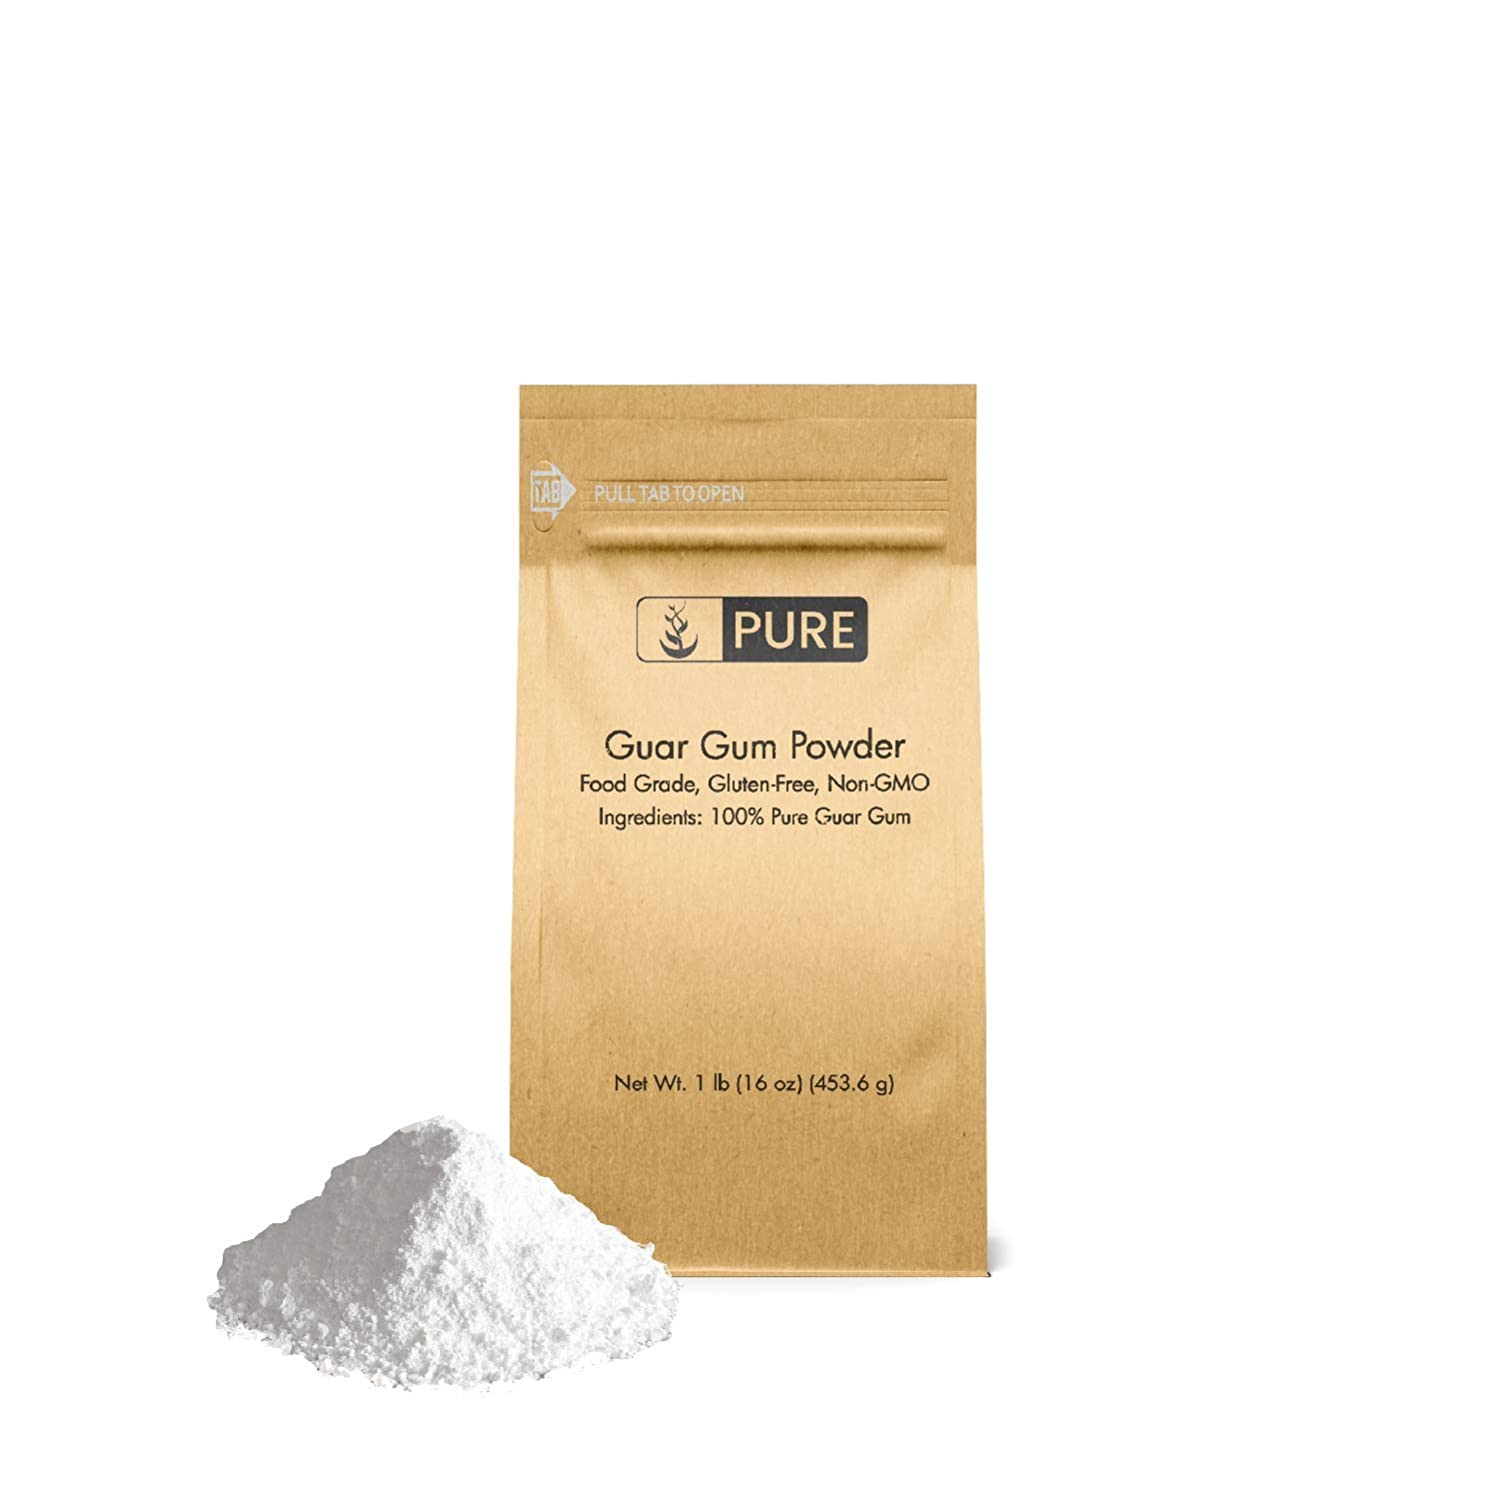 Guar Gum Powder (1 lb.) by Pure Ingredients, Food Safe , Gluten-Free, Non-GMO, Thickening Agent